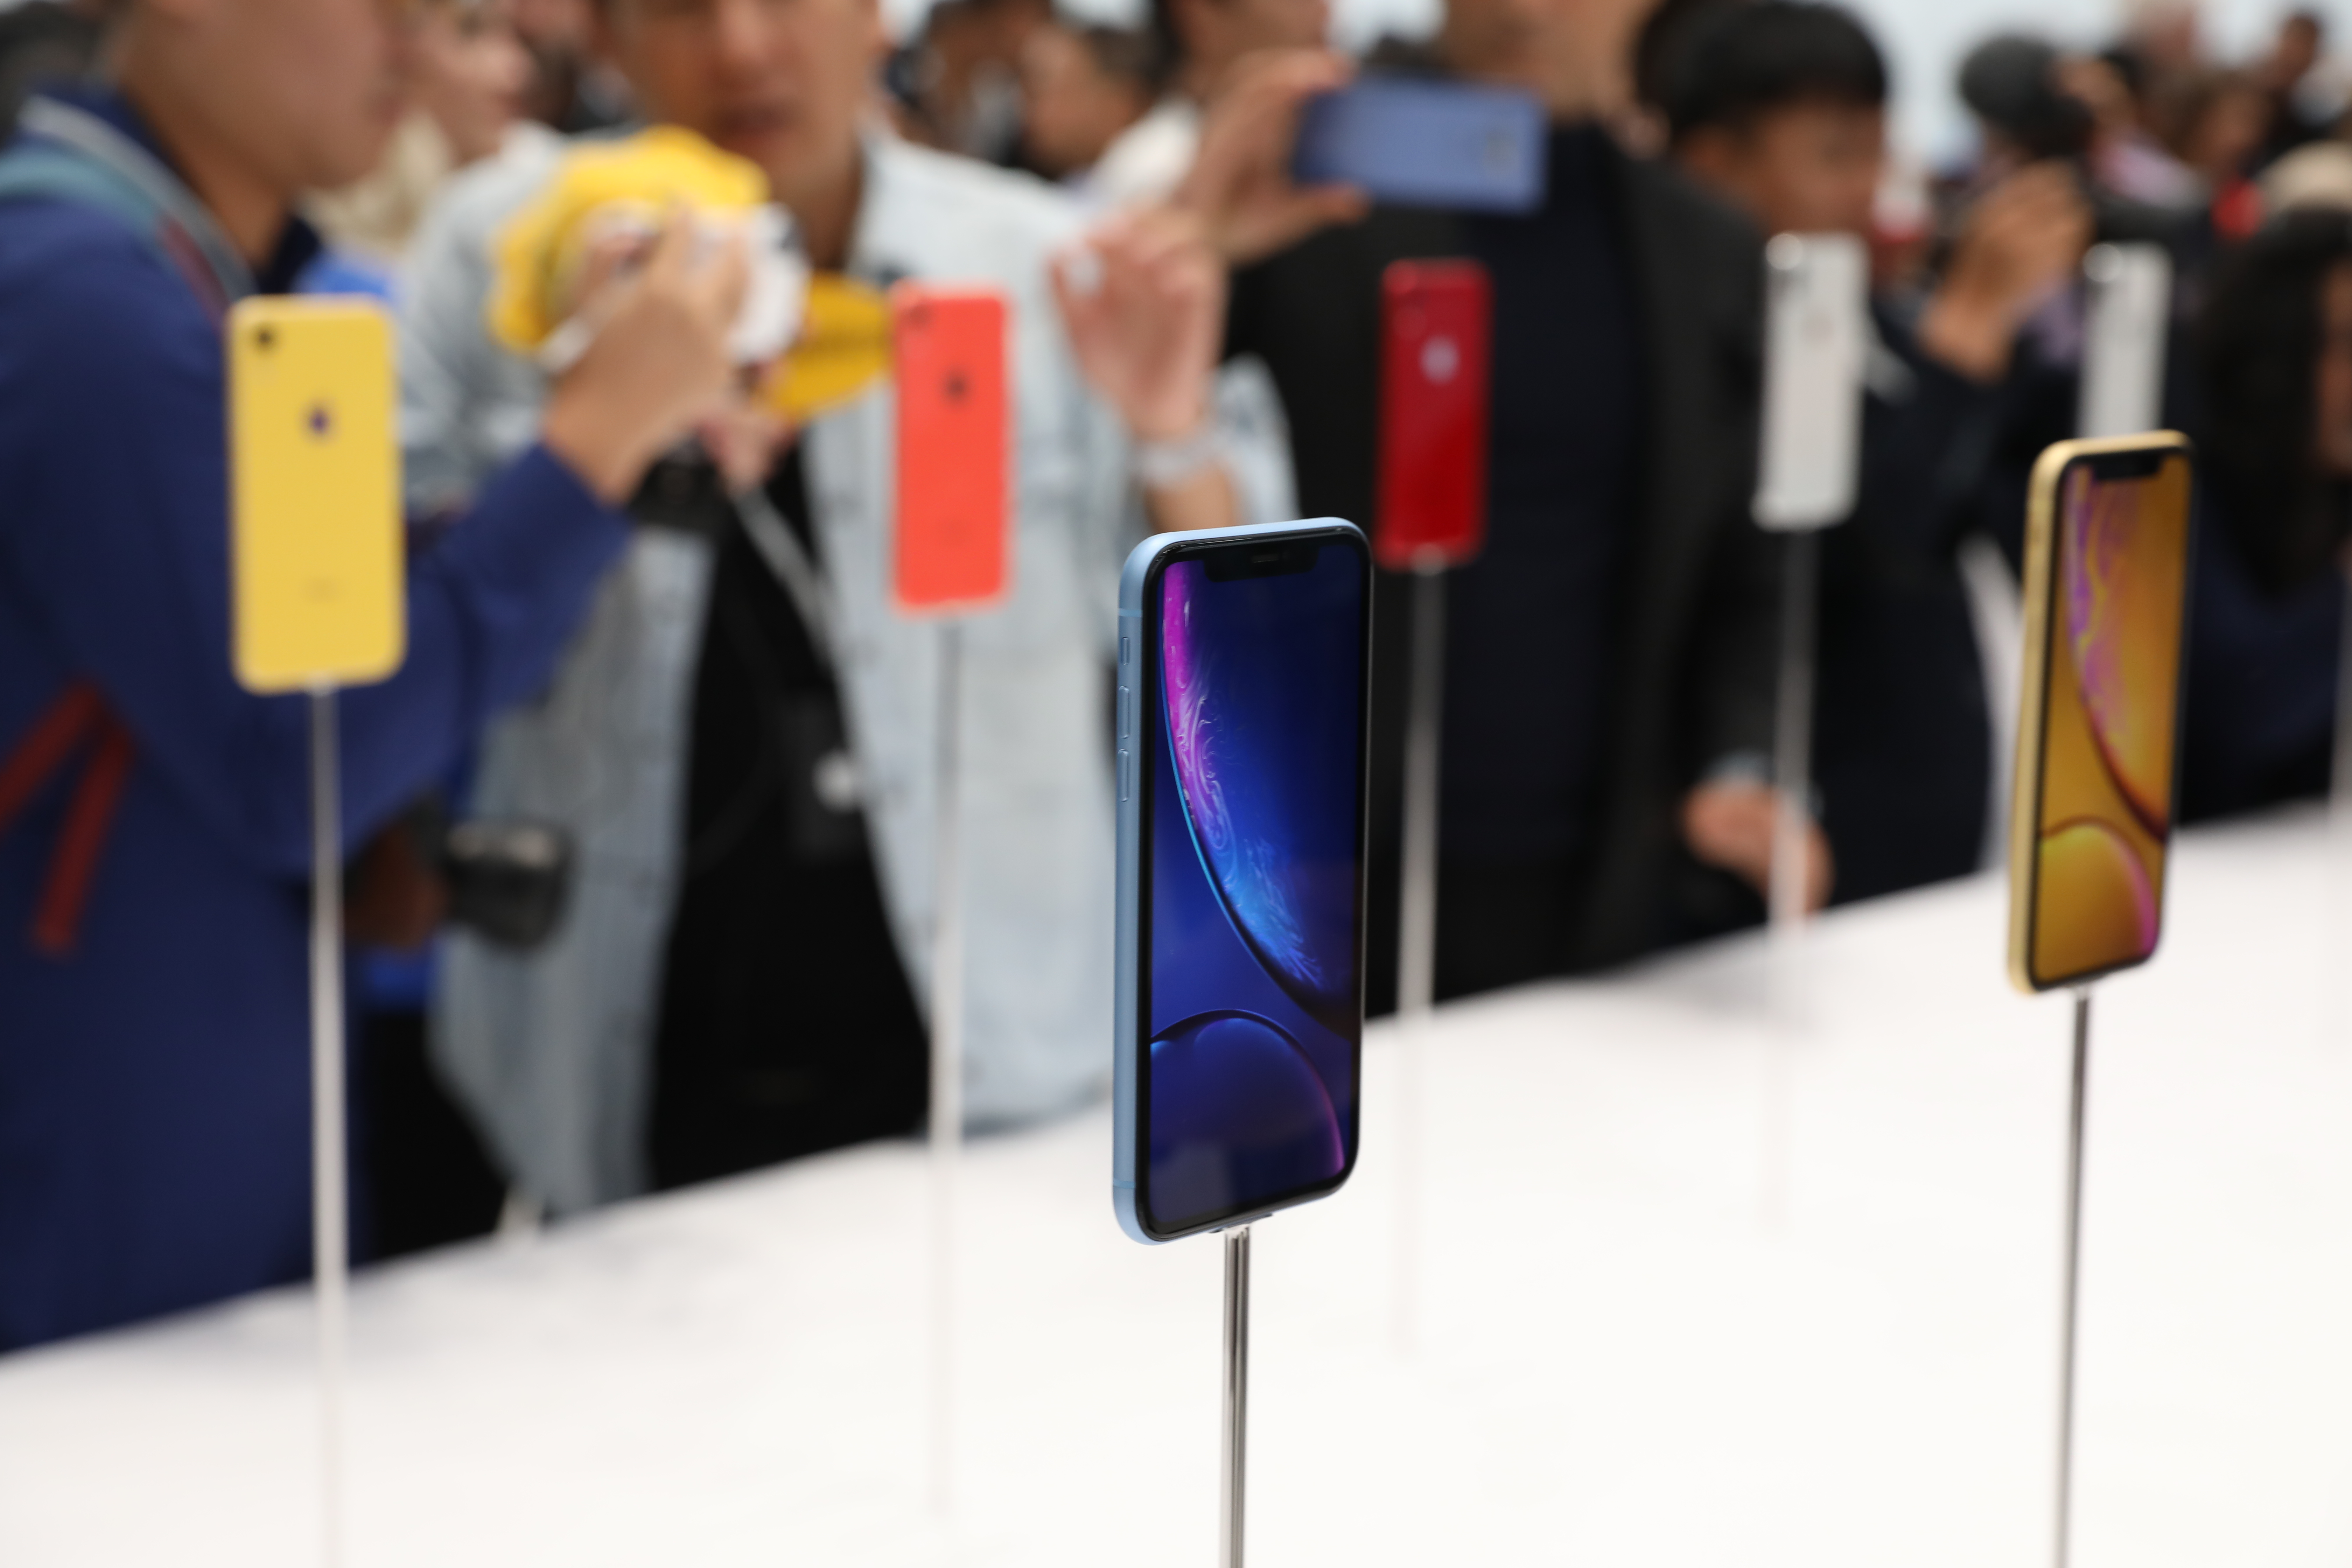 Giveaway iphone xr blue price